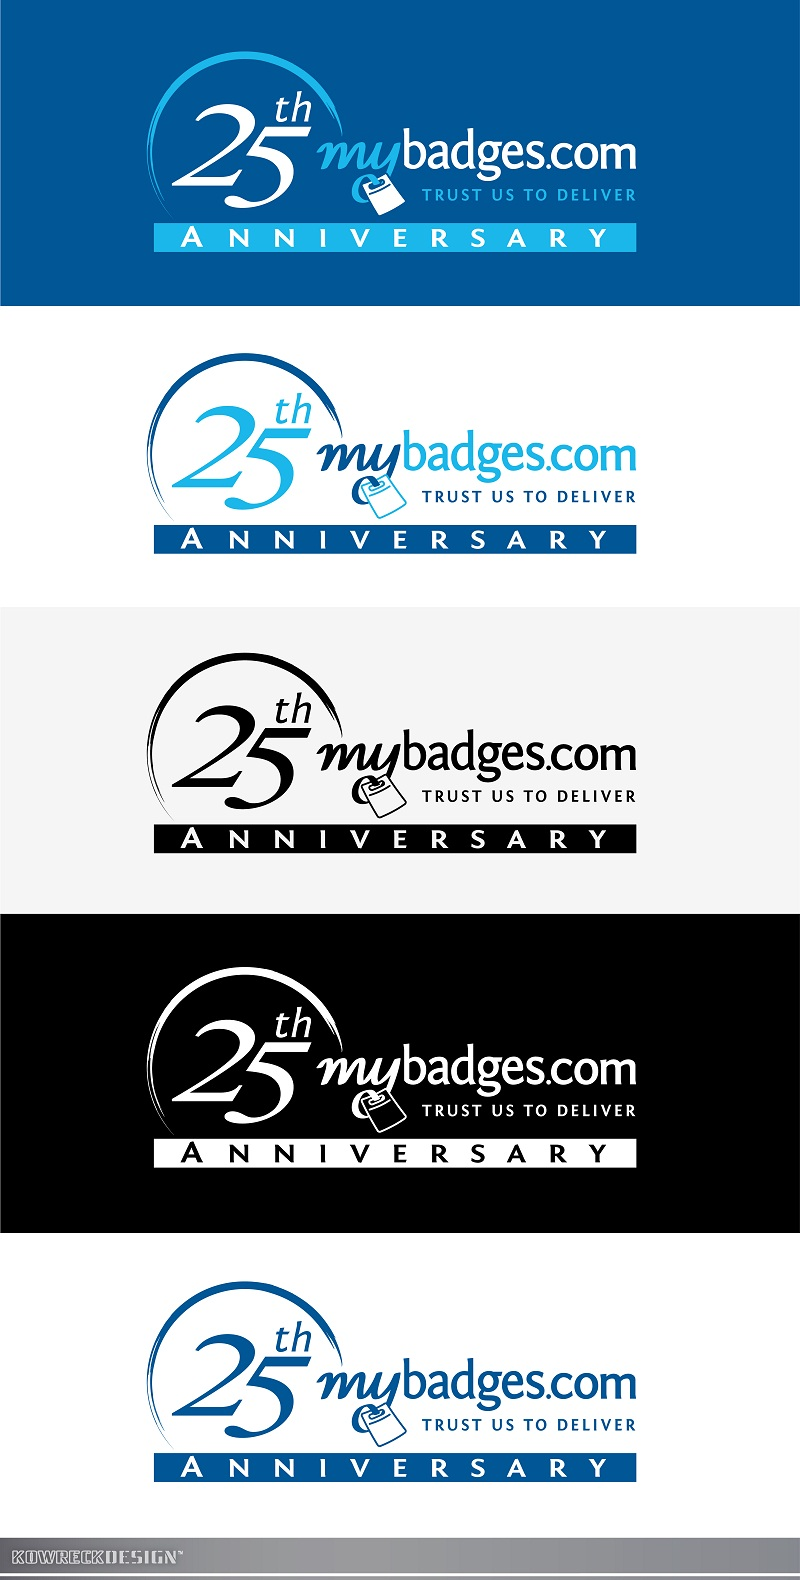 Logo Design by kowreck - Entry No. 157 in the Logo Design Contest 25th Anniversary Logo Design Wanted for MyBadges.com.